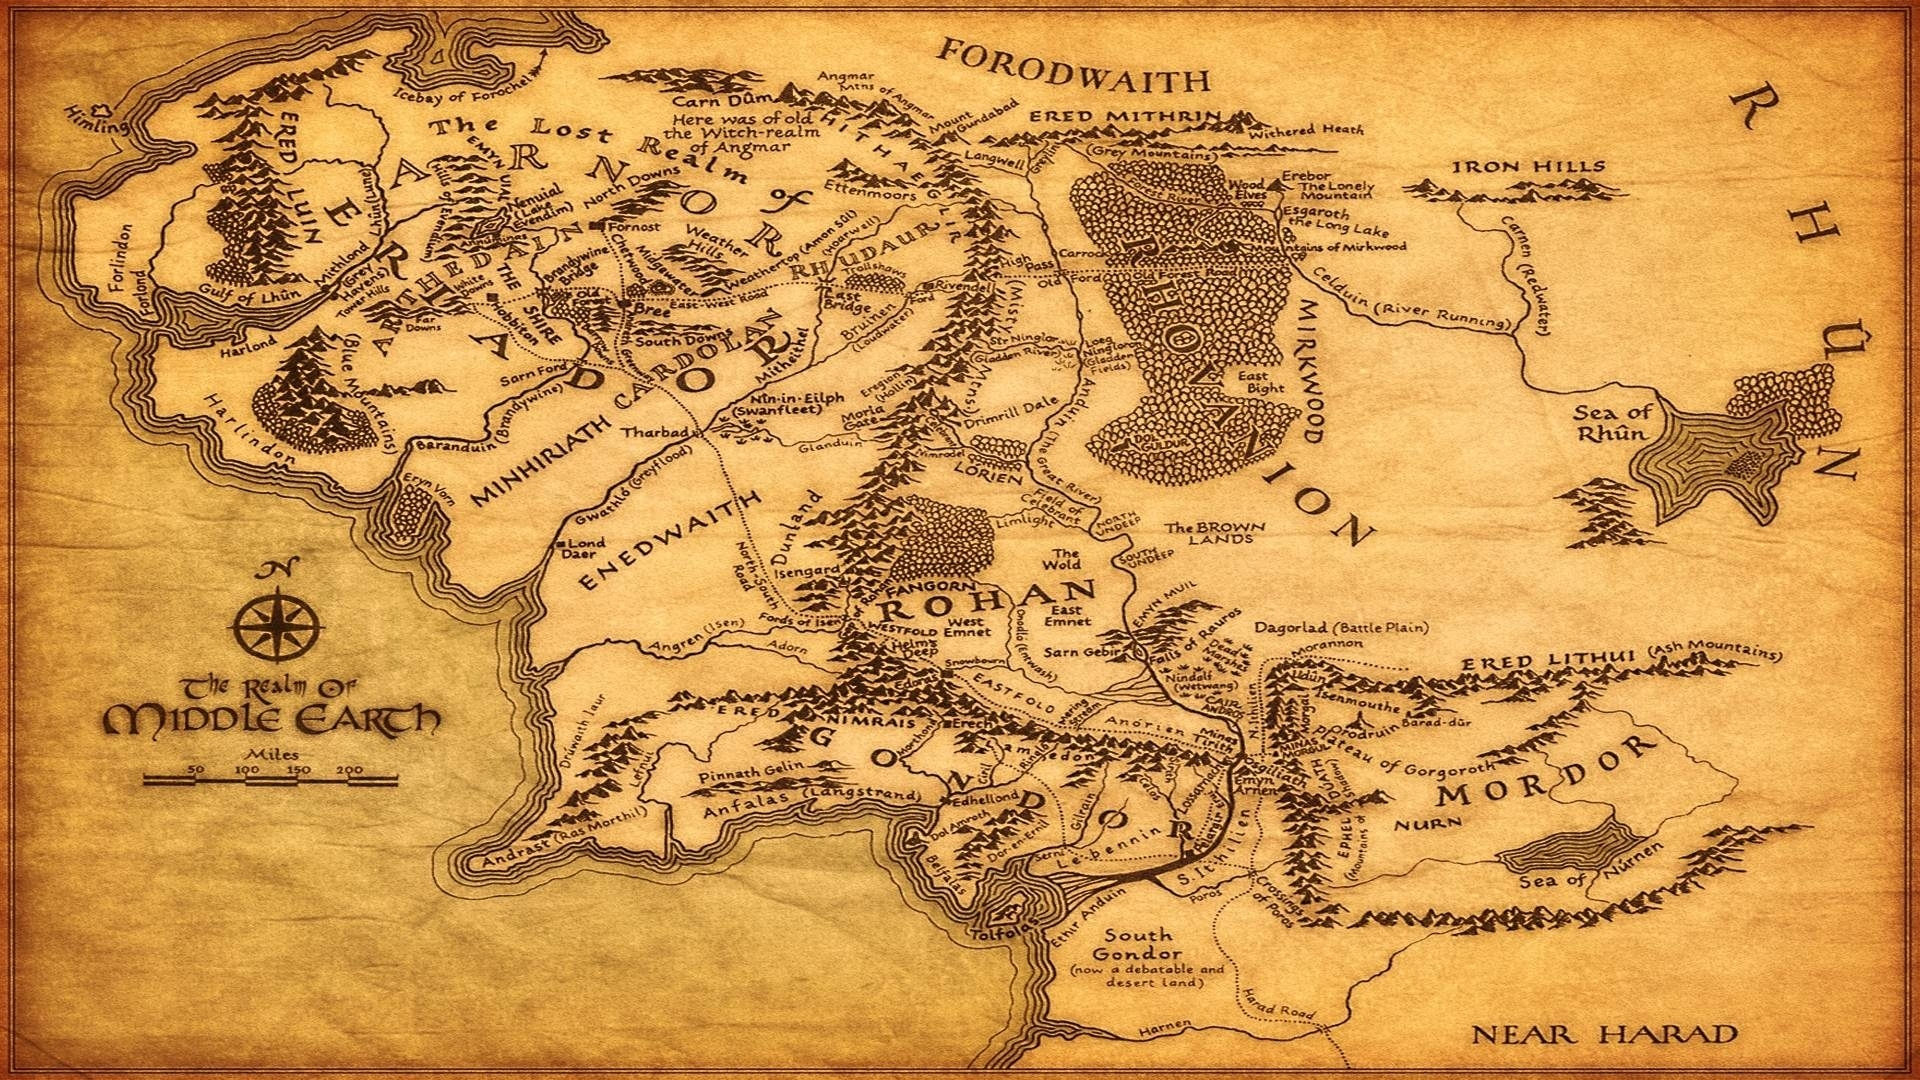 middle earth full map image - nickbros_256 - mod db